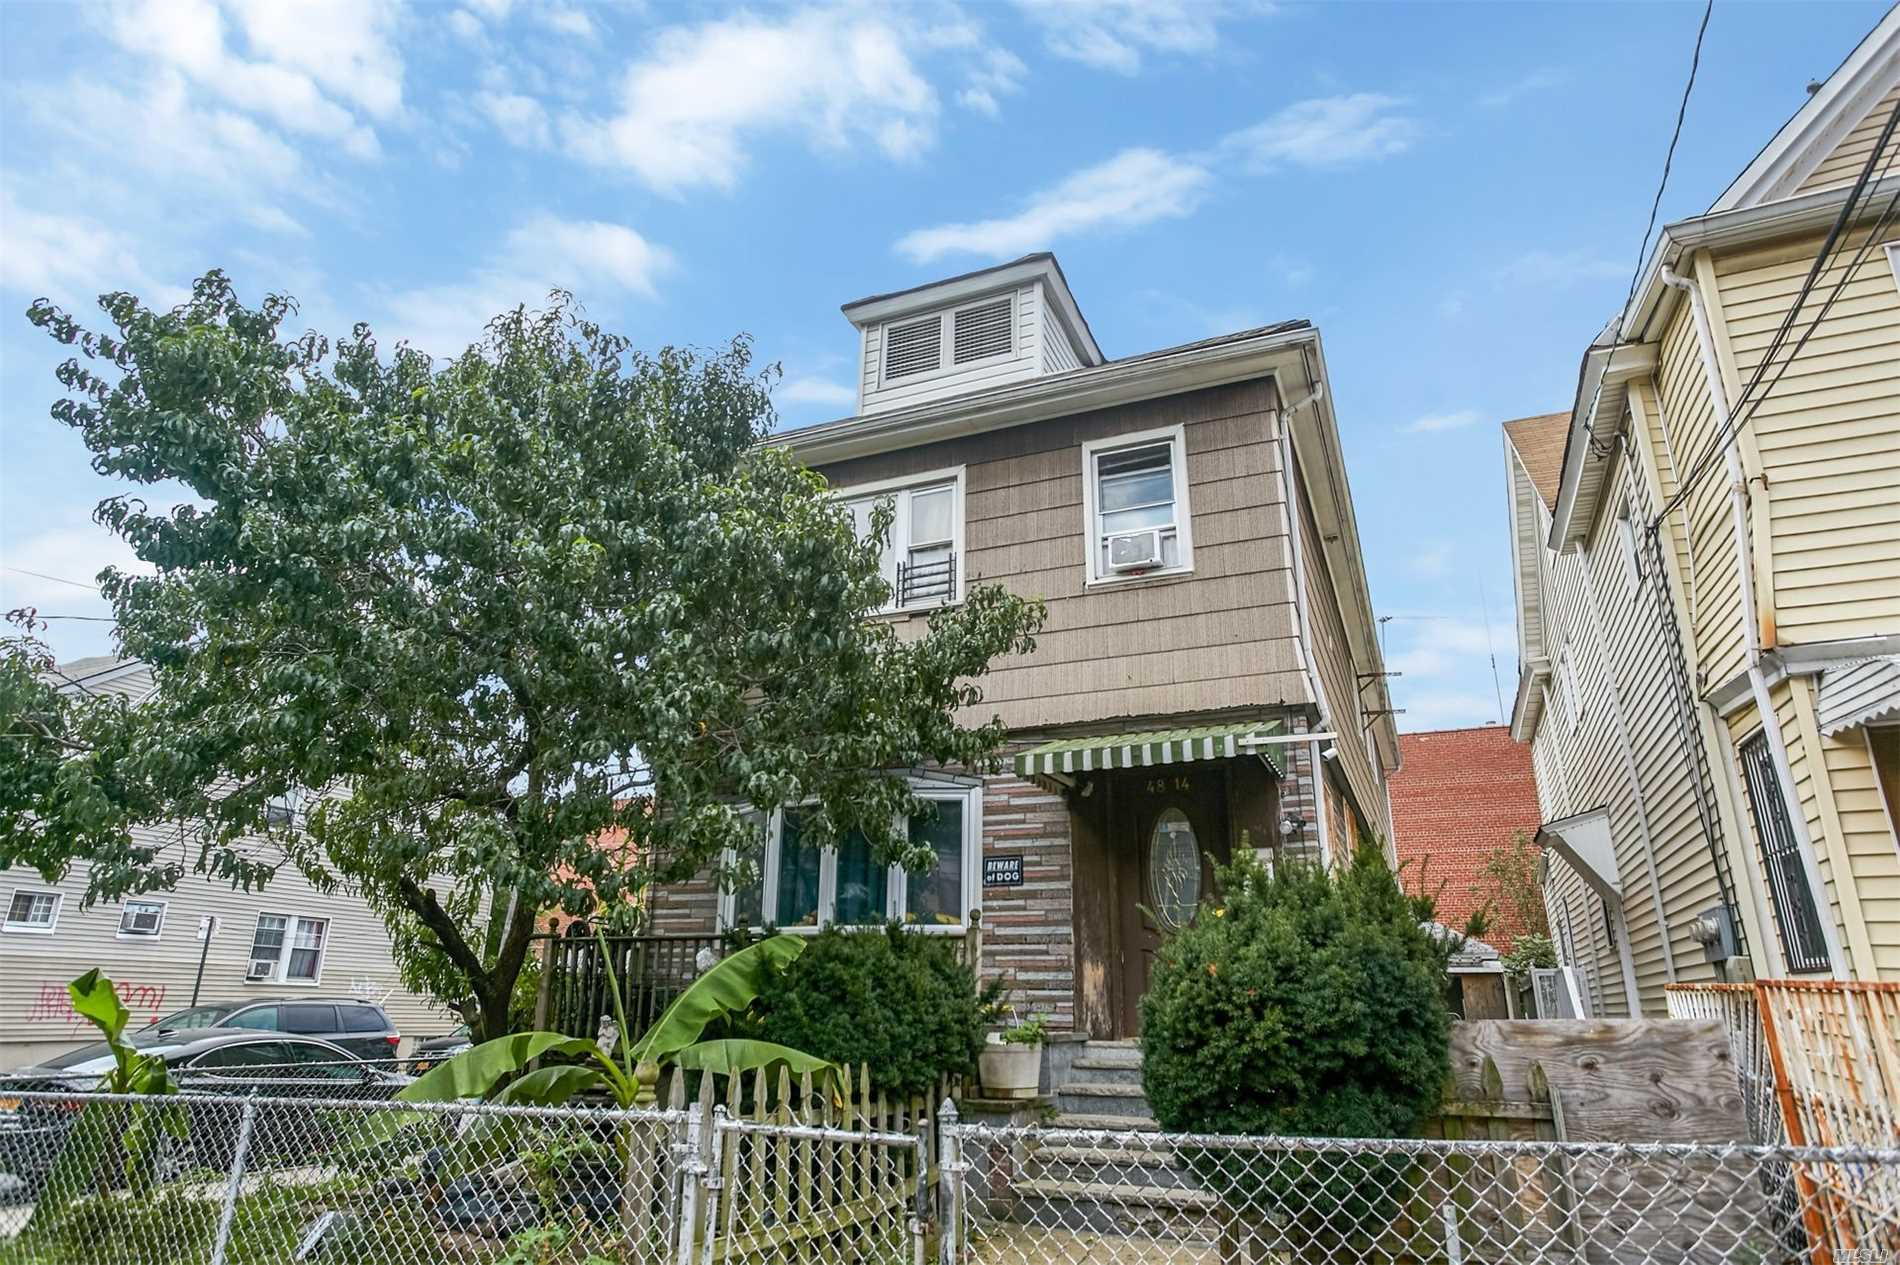 Photo of home for sale at 48-14 94 St, Elmhurst NY